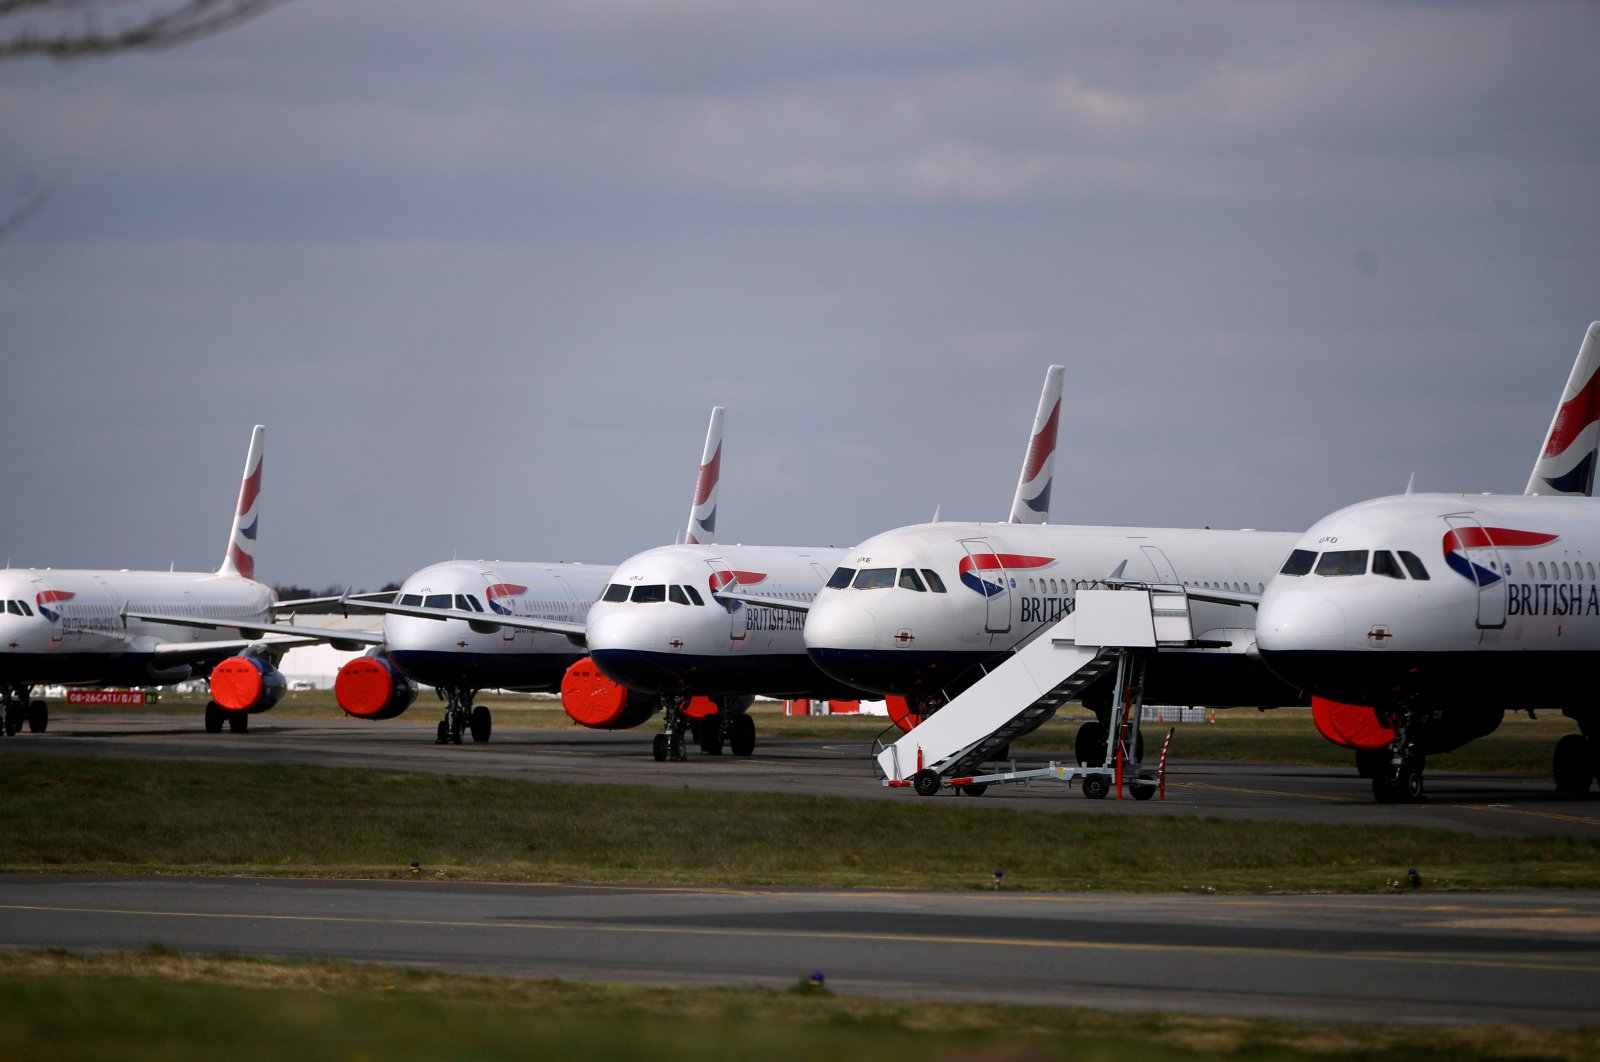 British Airways planes are seen parked at Bournemouth Airport, as the spread of the coronavirus disease continues, Bournemouth, Britain, April 1, 2020. (Reuters Photo)